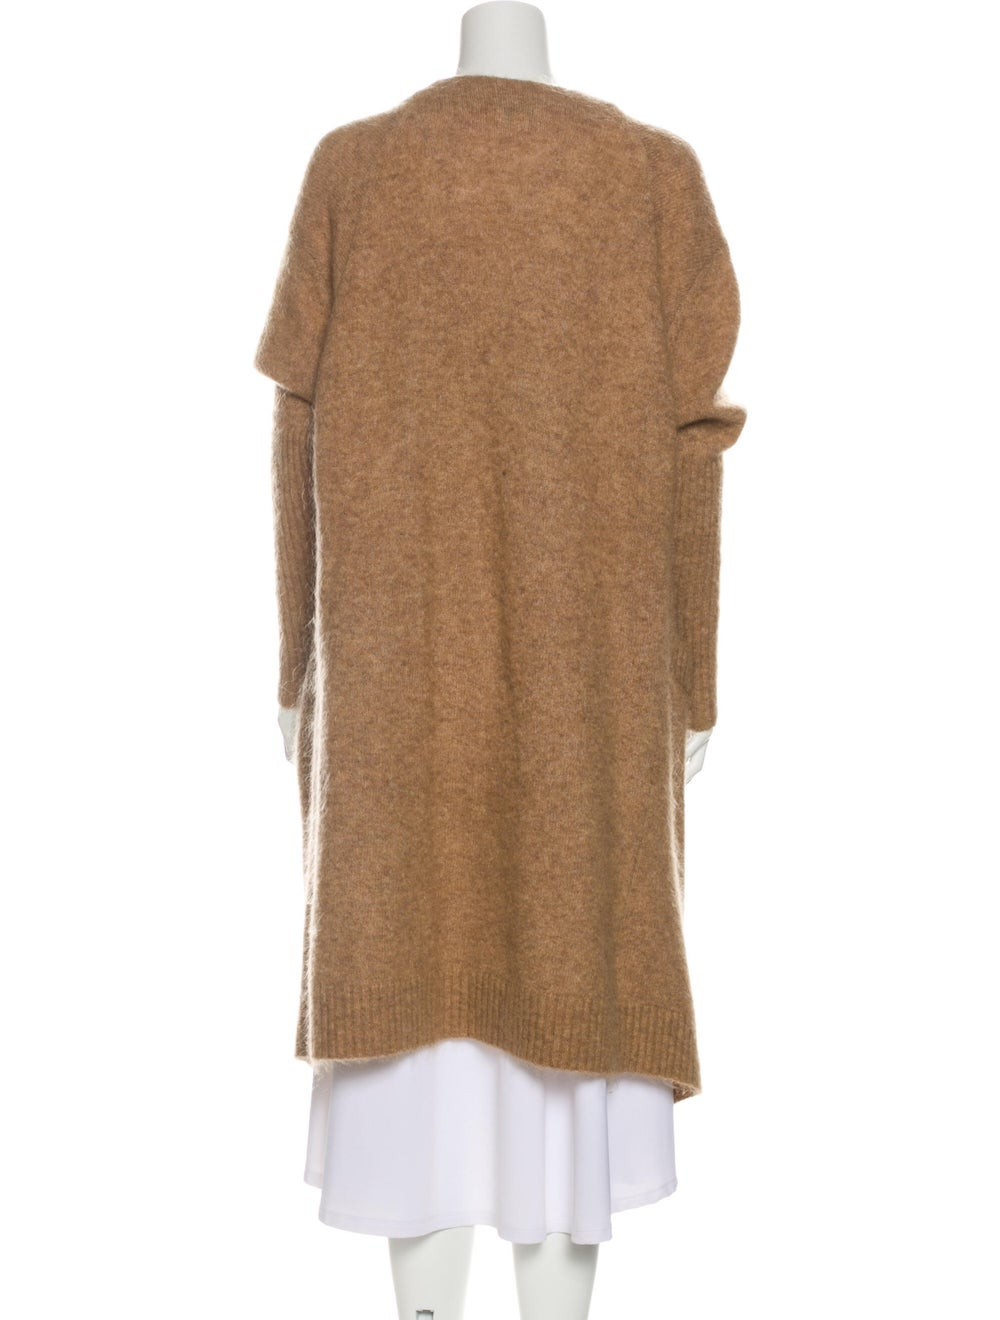 Acne Studios Open Front Sweater - image 3